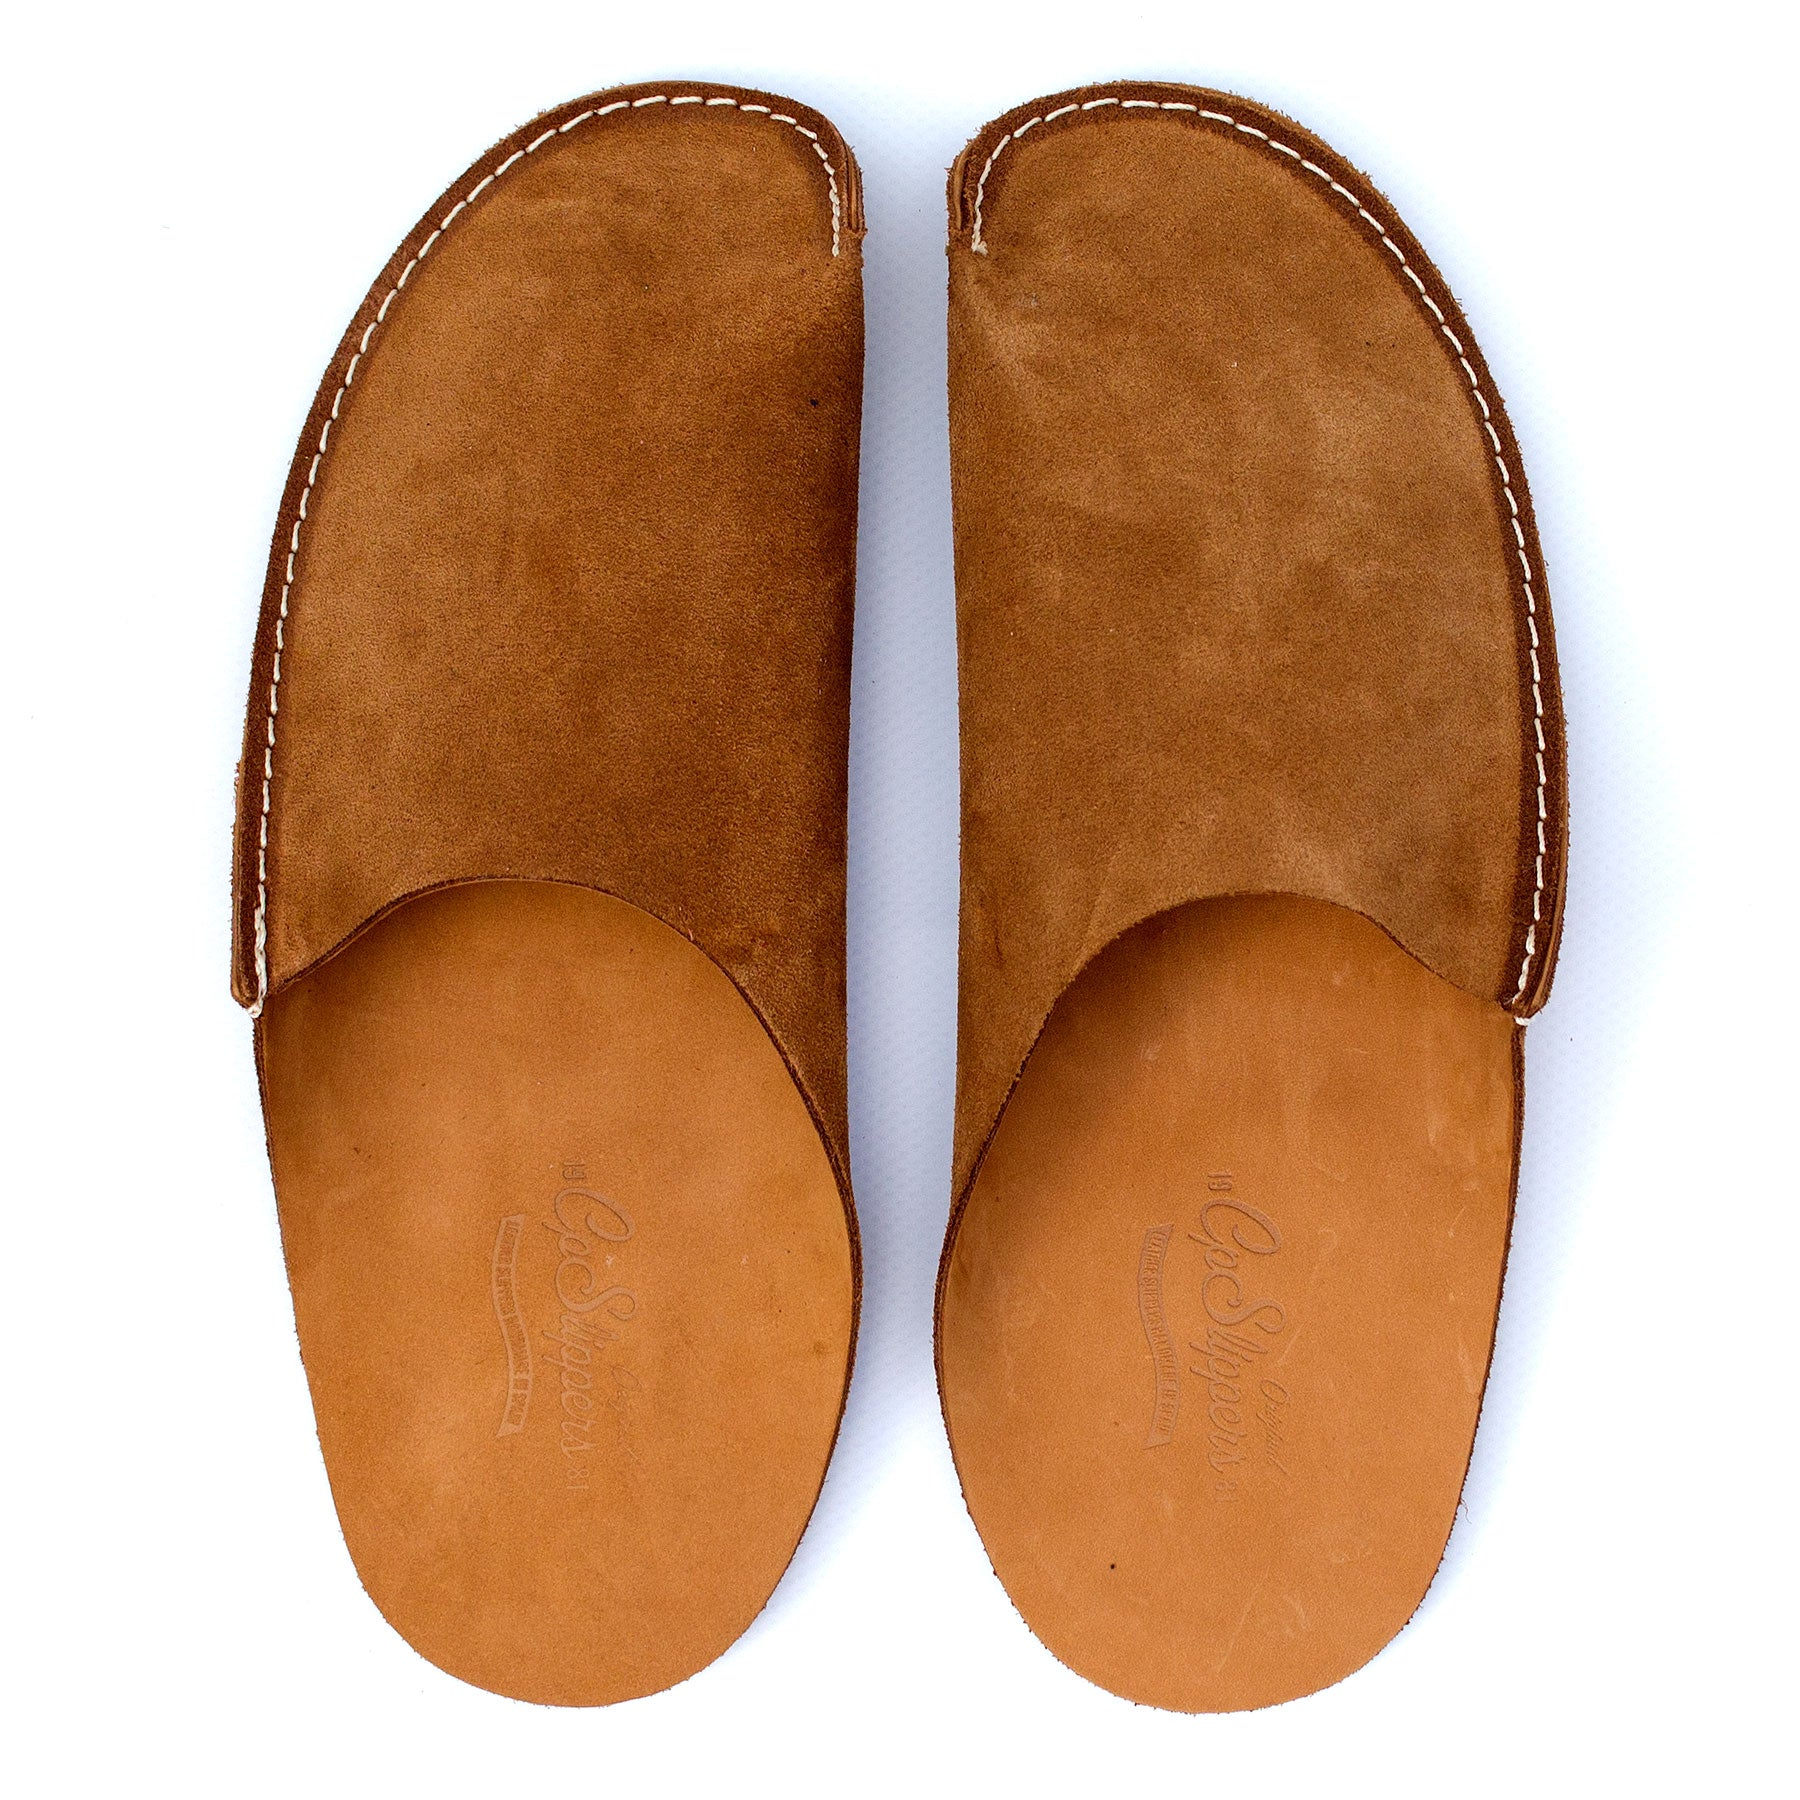 Tan CP Slippers Luxe - CP Slippers